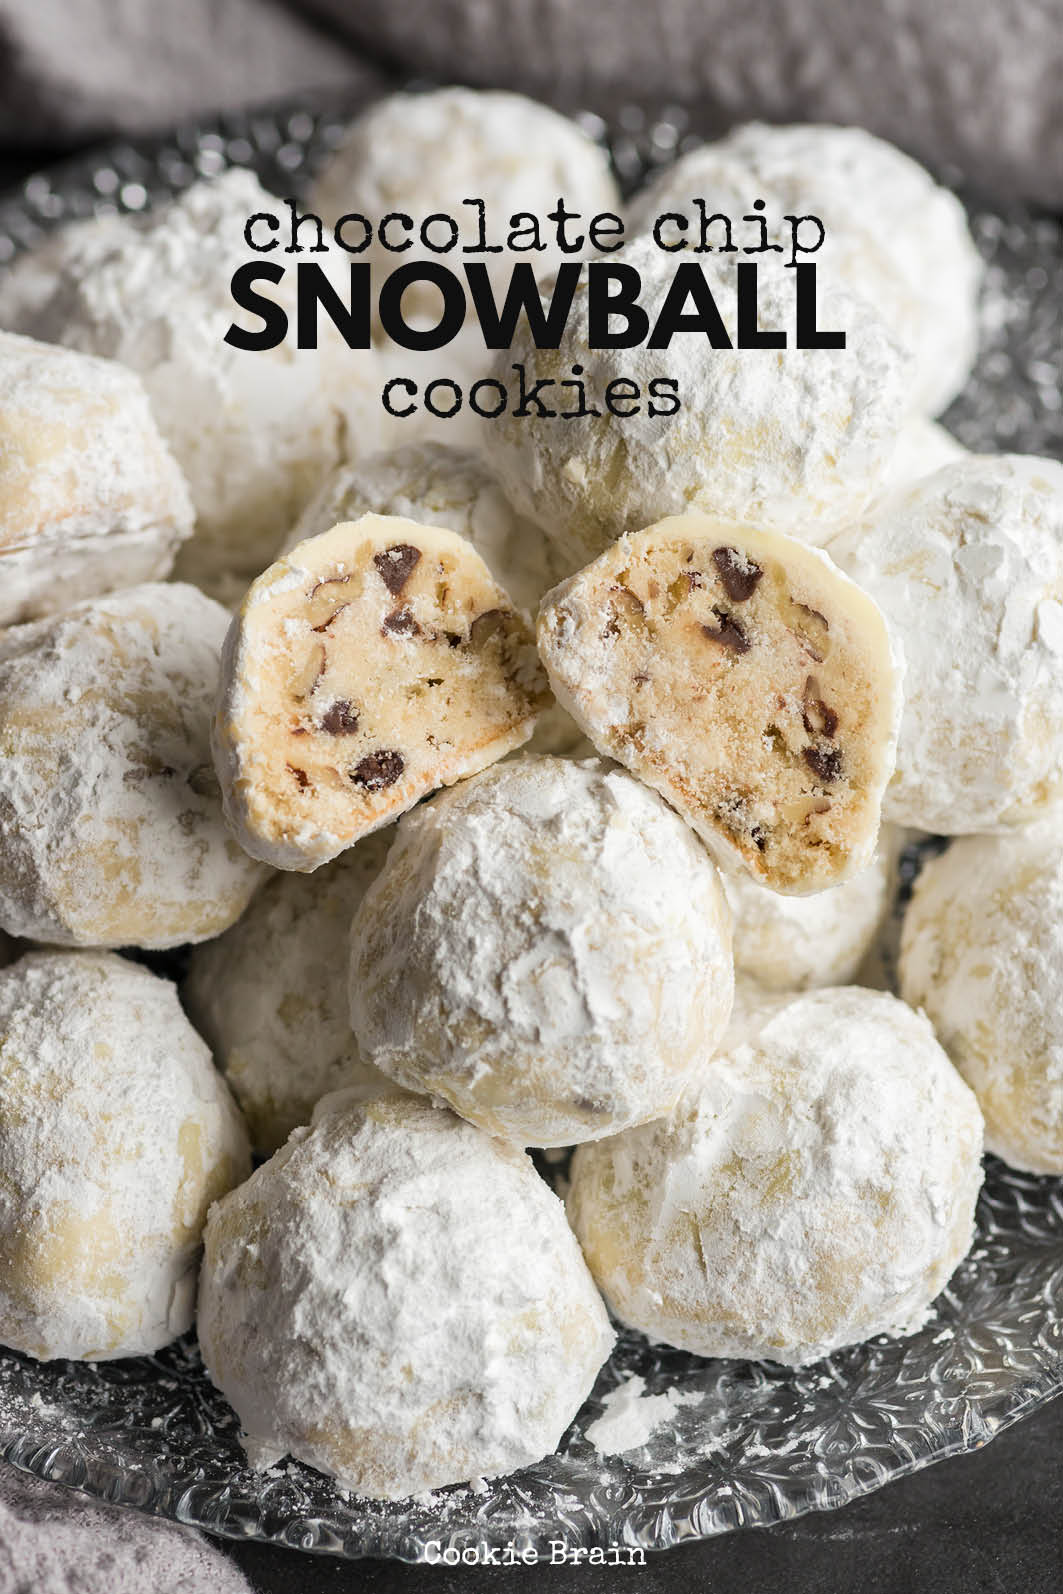 These buttery, melt-in-your-mouth chocolate chip snowball cookies are the perfect winter treat. Whether you call them Russian tea cakes or Mexican wedding cookies, you can call them amazing!